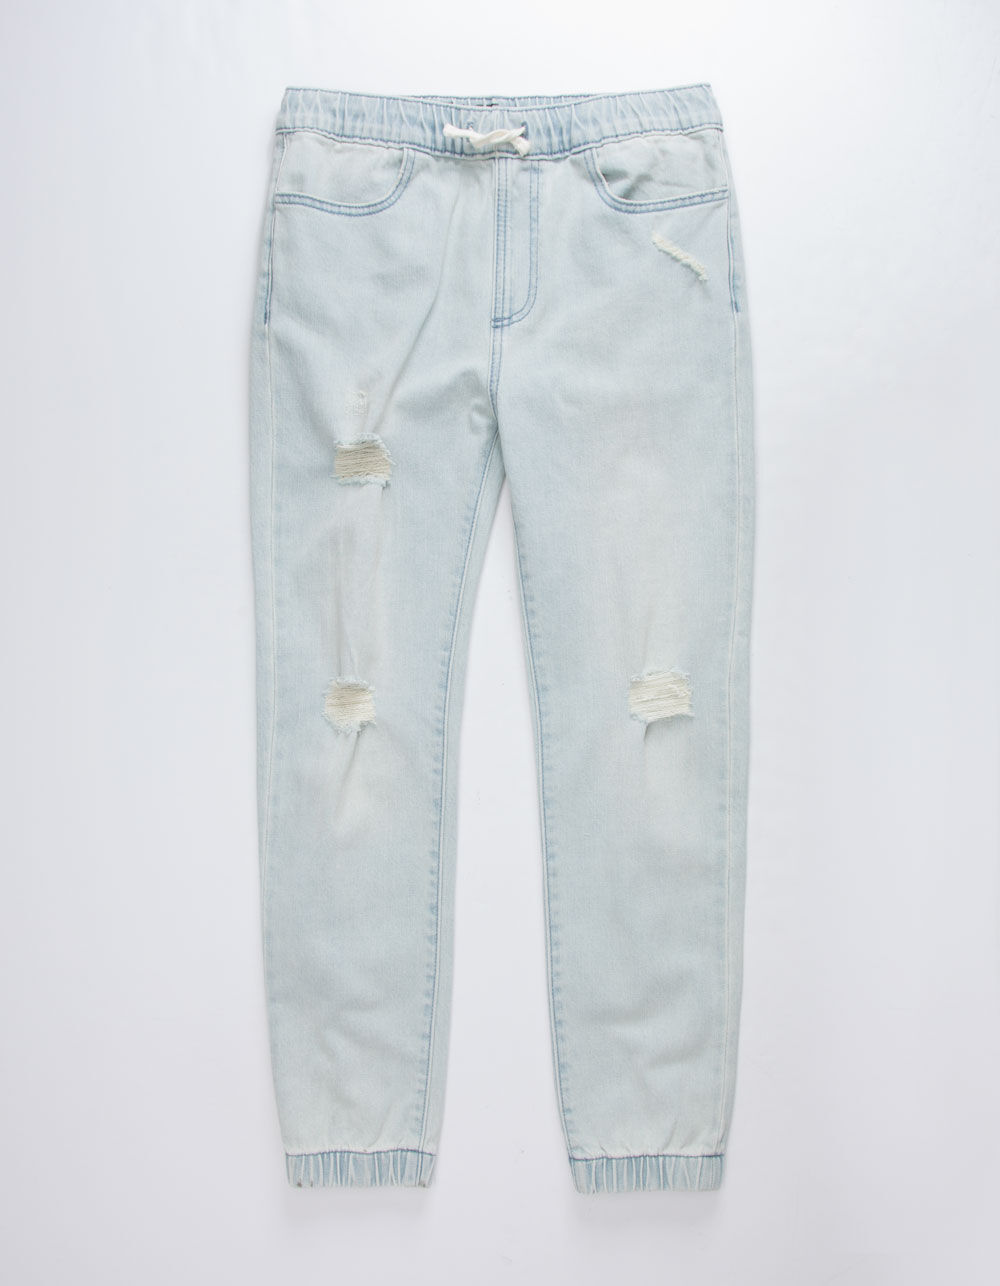 EAST POINTE Damien Denim Boys Ripped Jogger Pants